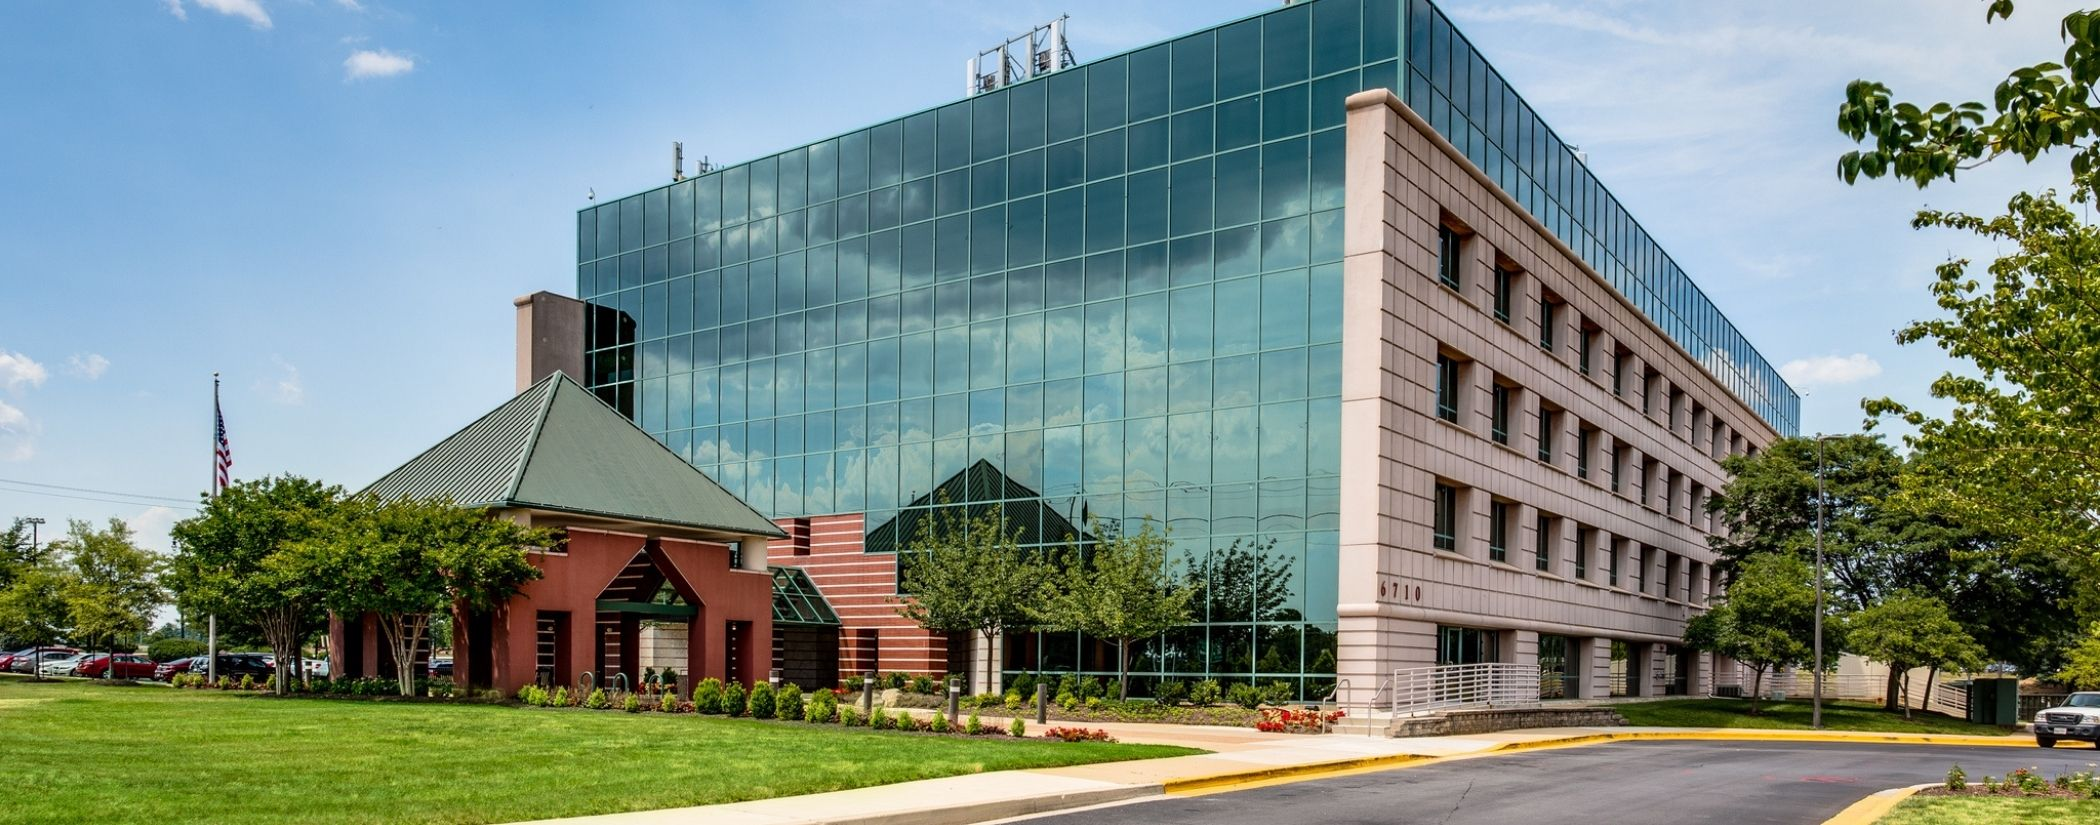 Commercial Landscaping Services for Office Buildings